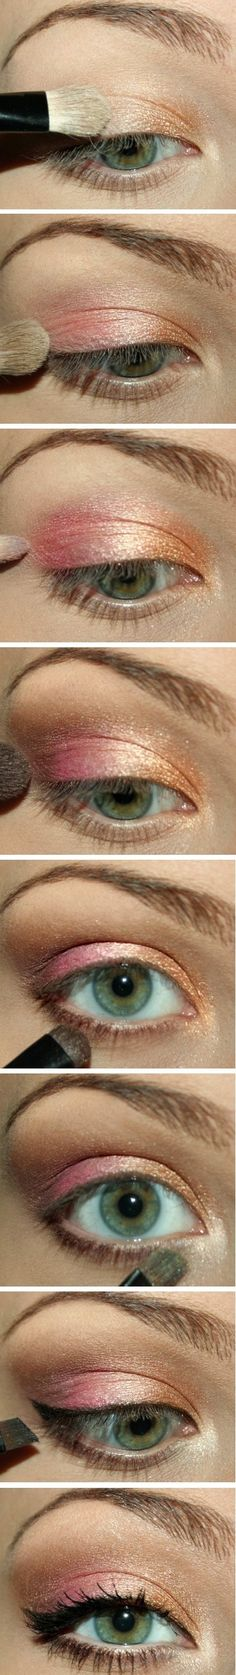 pink and gold eye